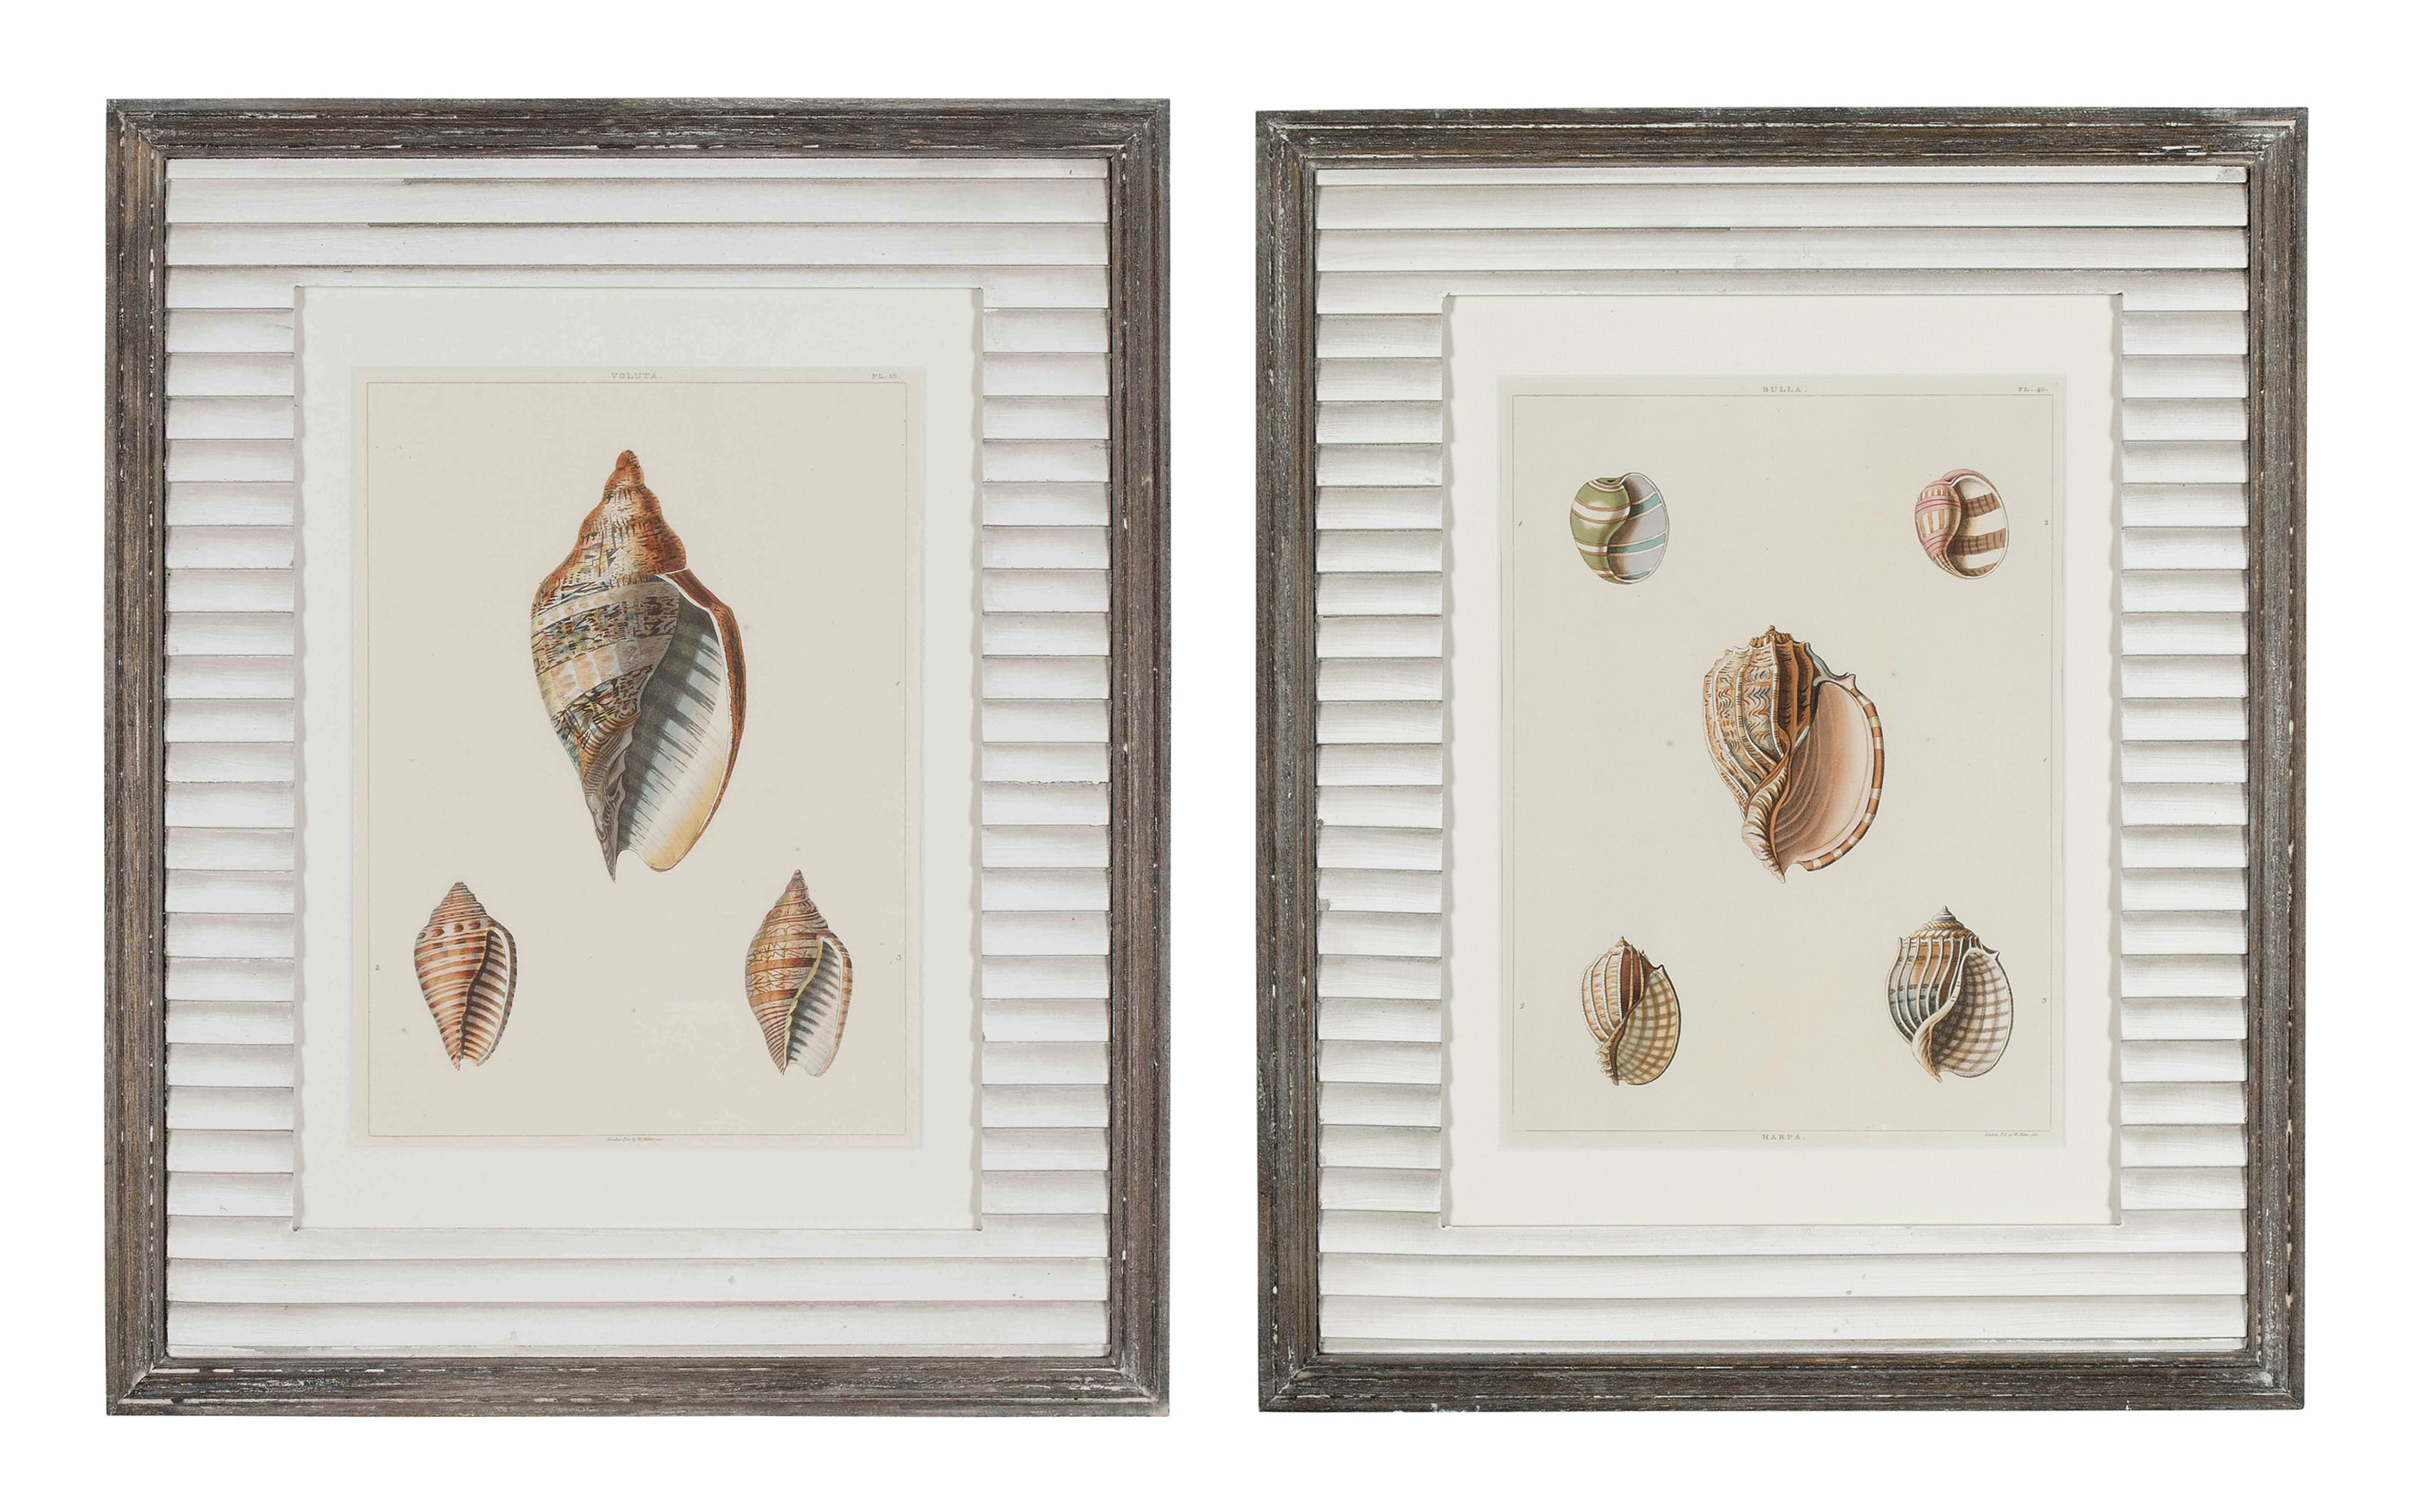 FOURTEEN COLOURED ENGRAVINGS FROM 'CONCHOLOGY, OR THE NATURAL HISTORY OF SHELLS'